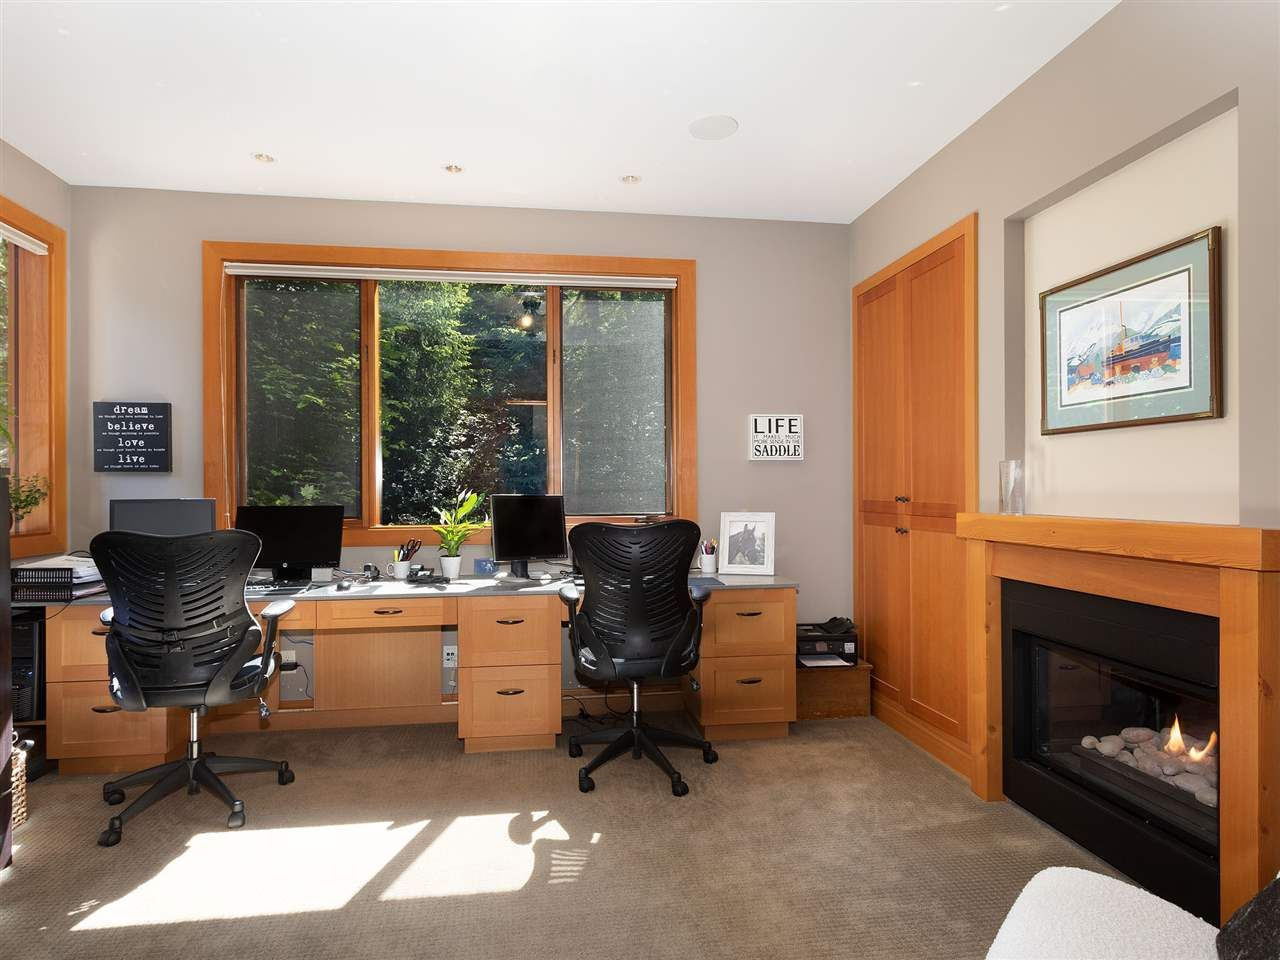 Photo 14: Photos: 3217 ARCHIBALD WAY in Whistler: Alta Vista House for sale : MLS®# R2468991